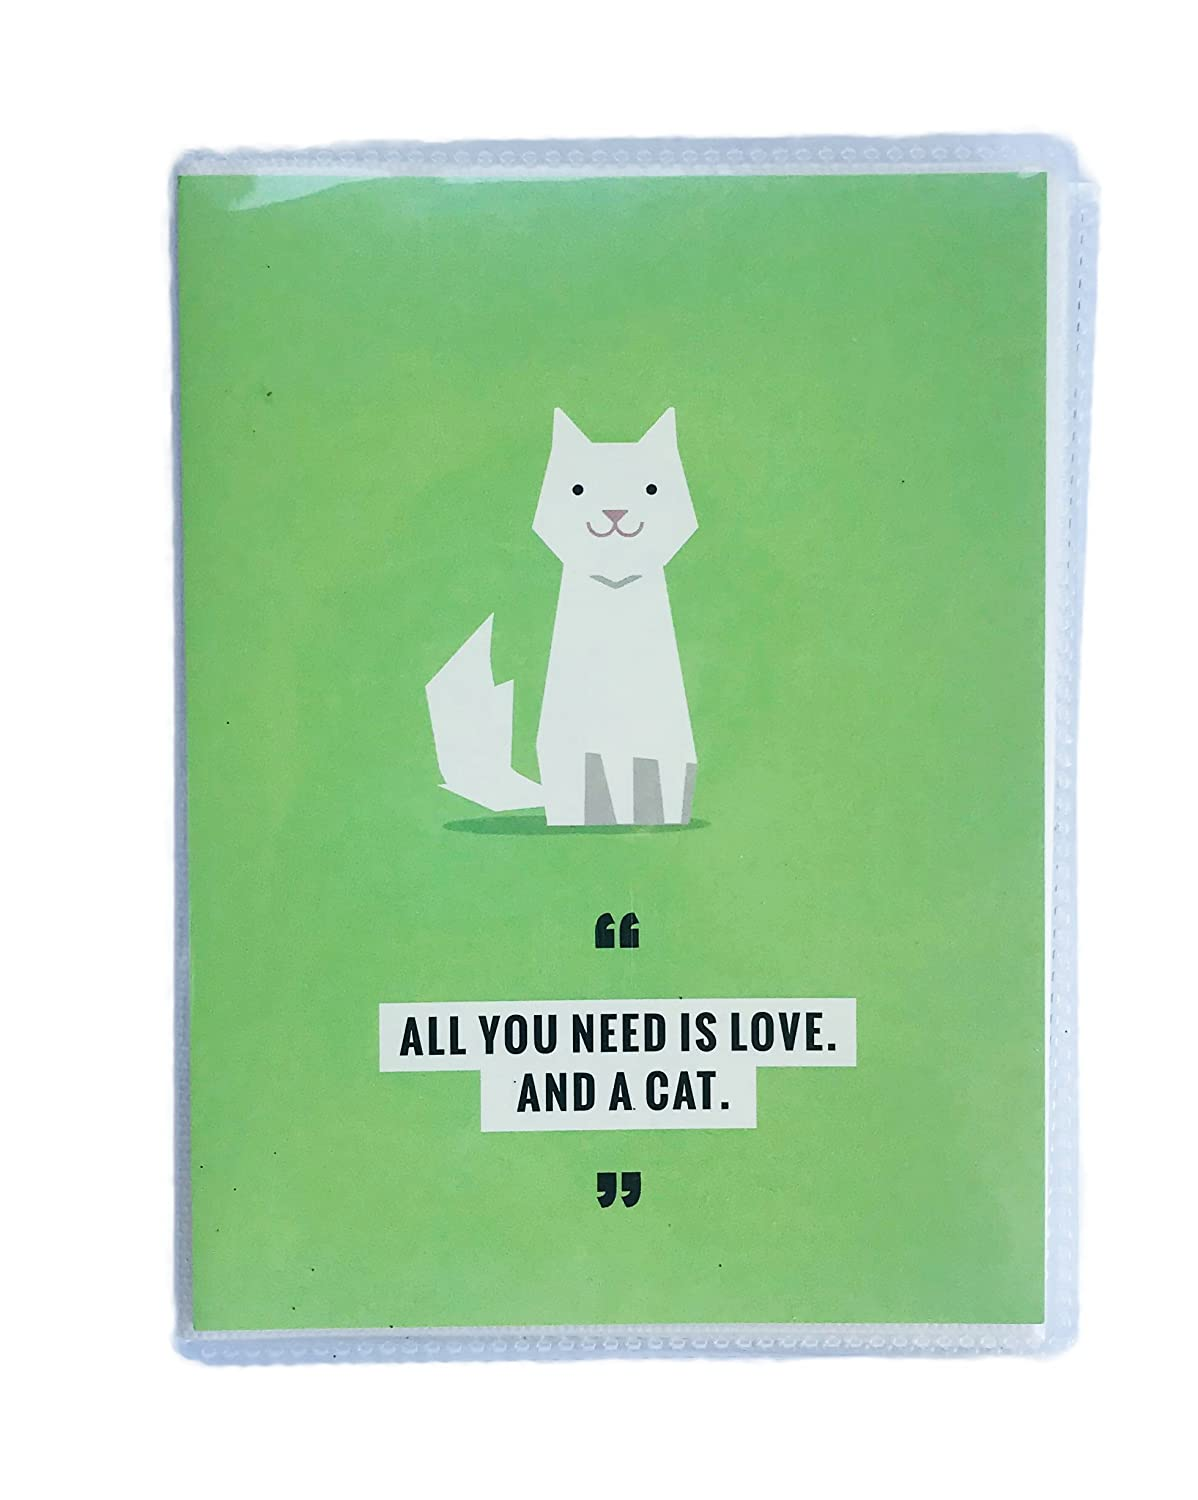 Recollections Pet Themed Photo Album Book (Green, Cat) MSPCI